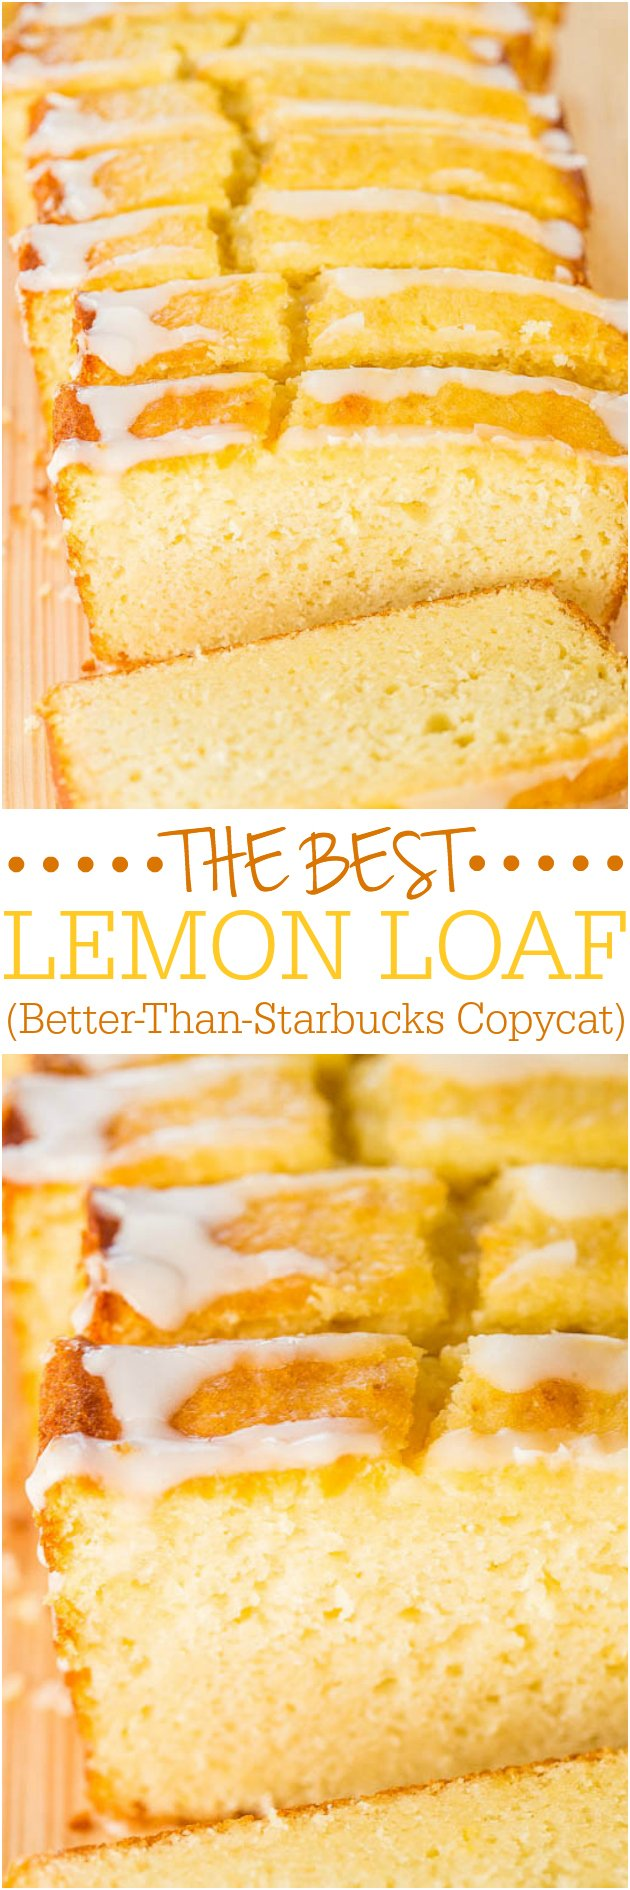 The Best Lemon Loaf (Better-Than-Starbucks Copycat) — It took years, but I finally recreated it!! Easy, no mixer, no cake mix, dangerously good, and SPOT ON!! You're going to love this lemon pound cake recipe!